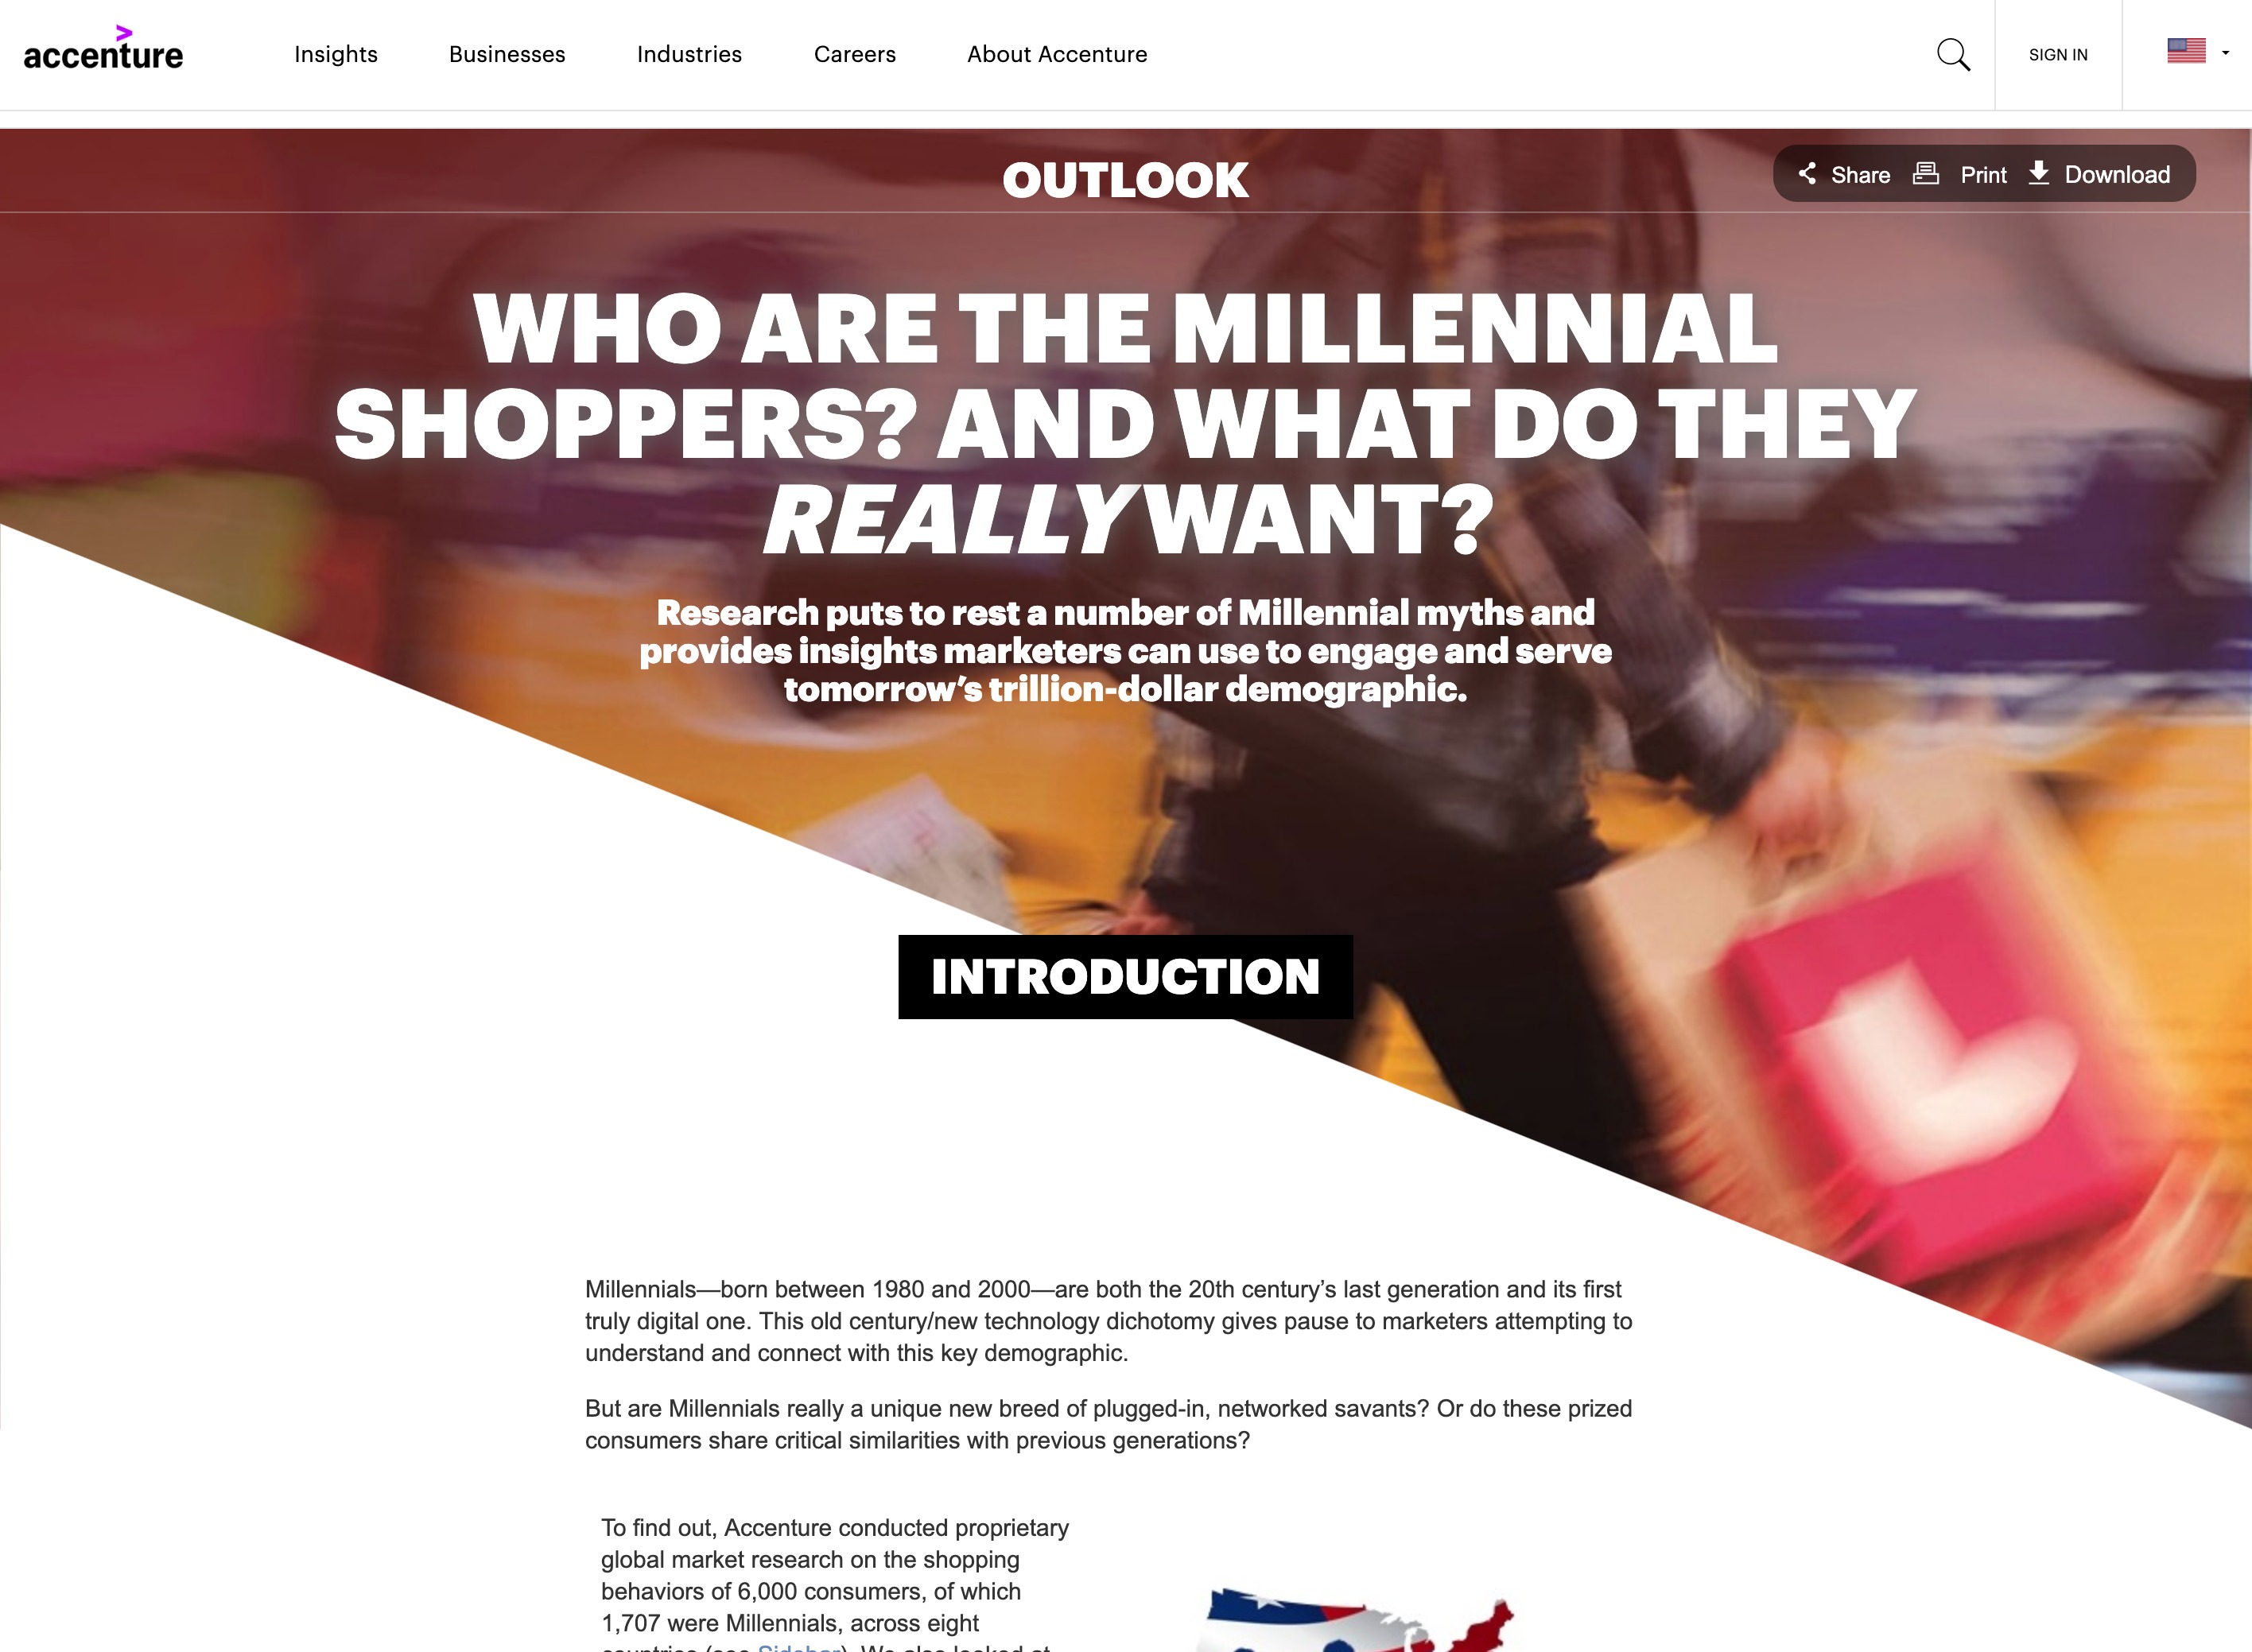 「Who are the Millennial shoppers? And what do they really want?」